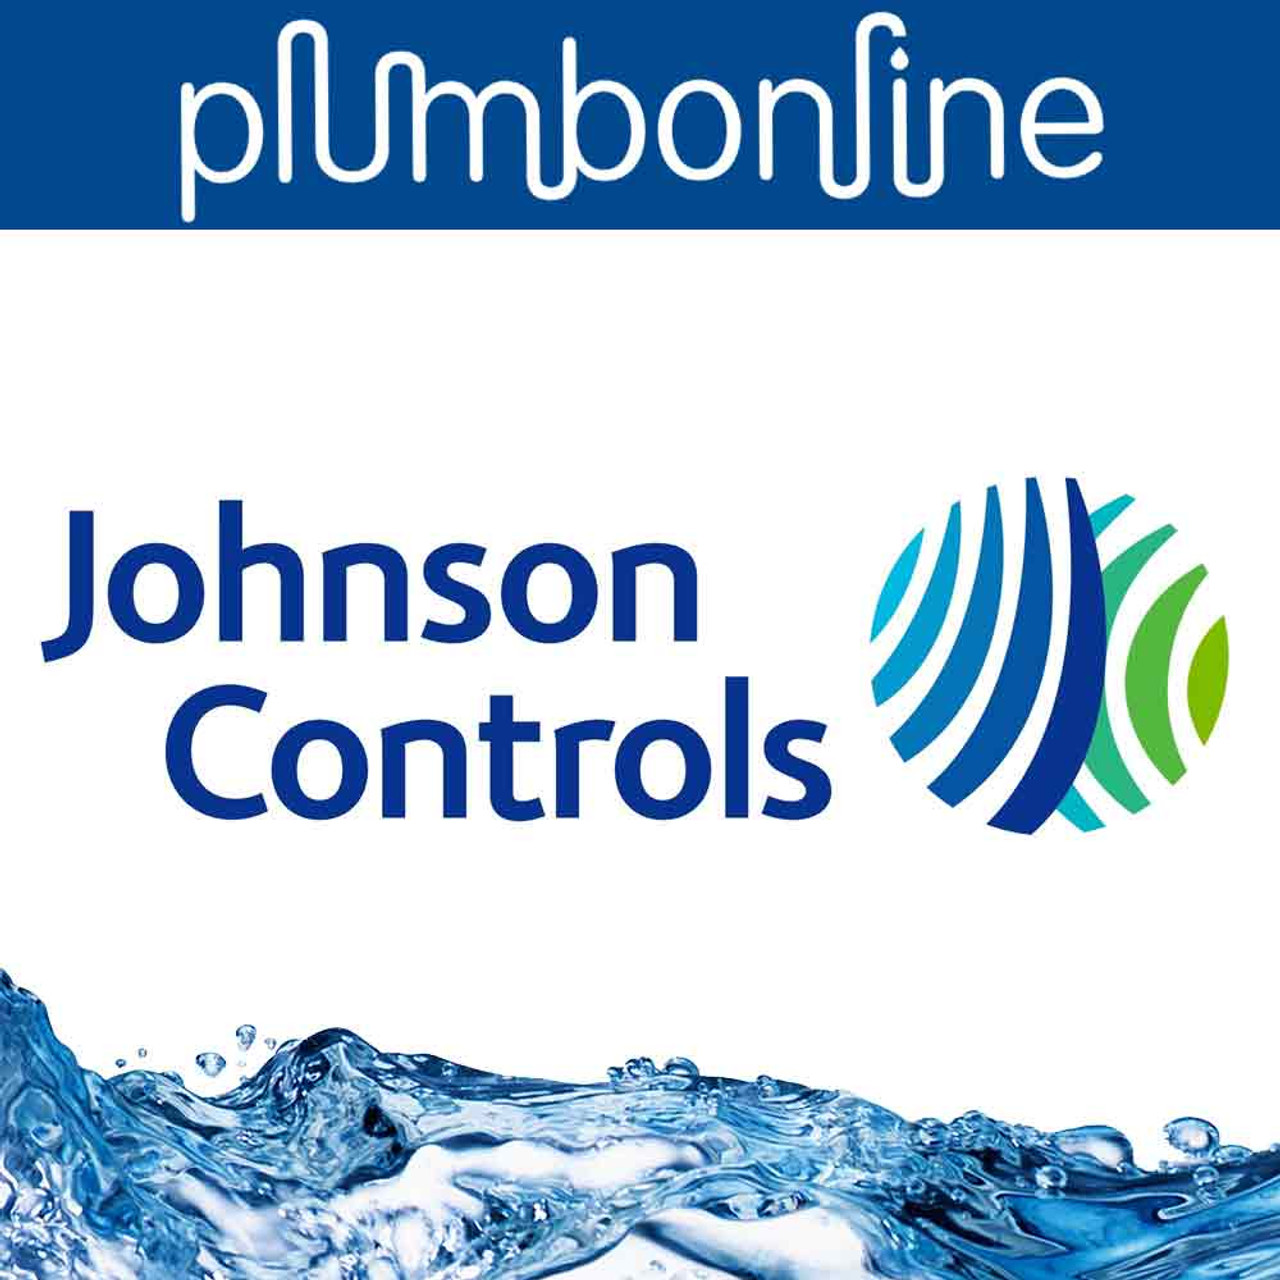 Johnson Controls A421 Electronic Temperature Controller | Type 4X on